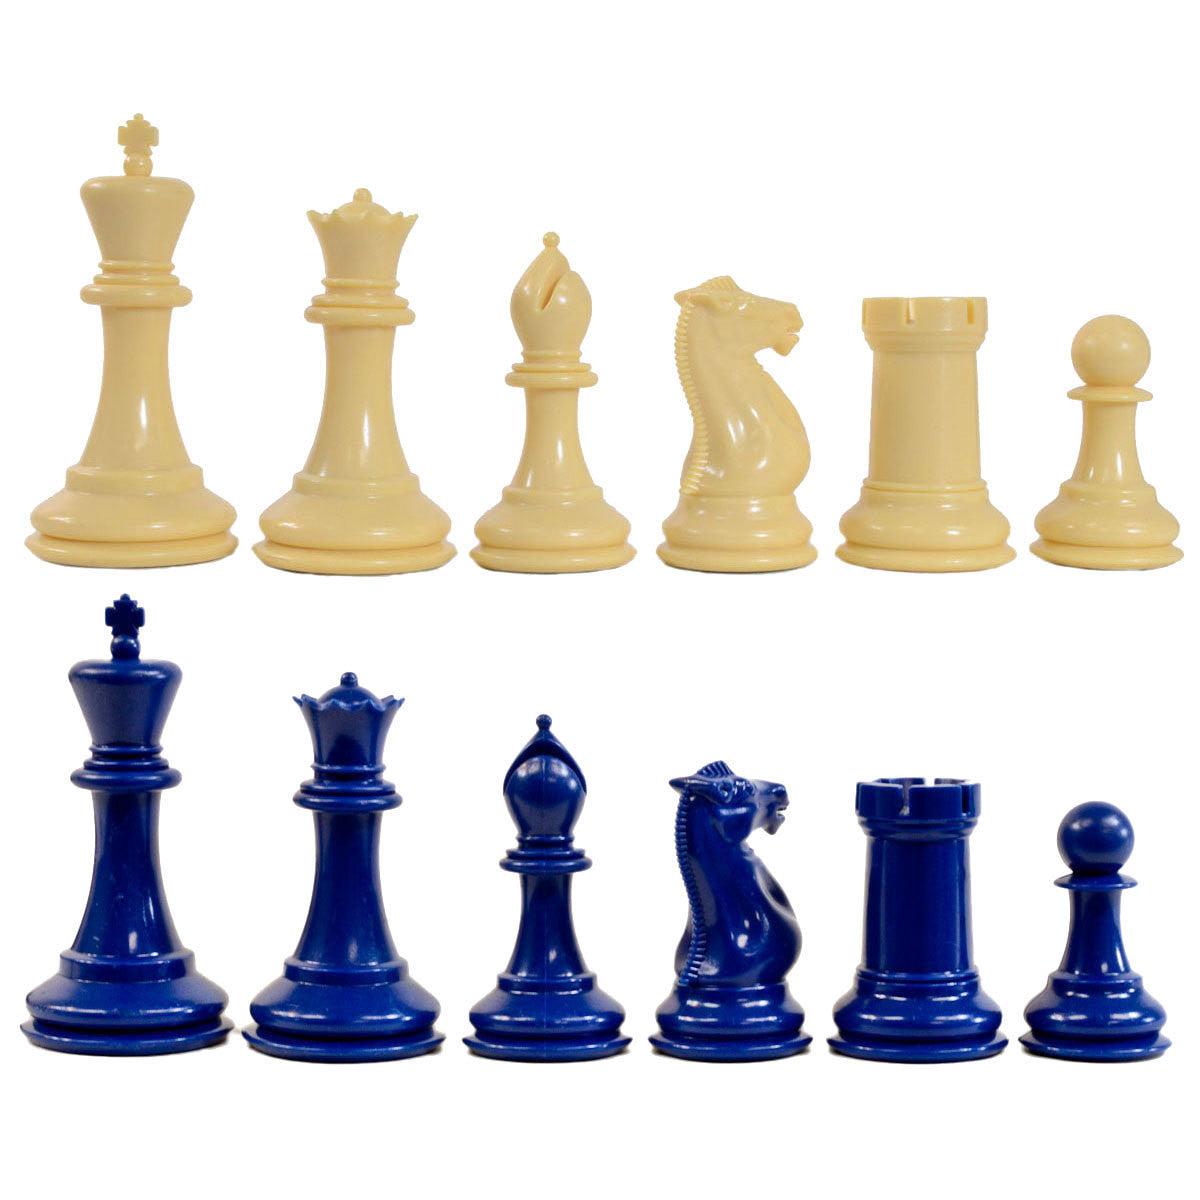 Traditional Staunton Chess Pieces